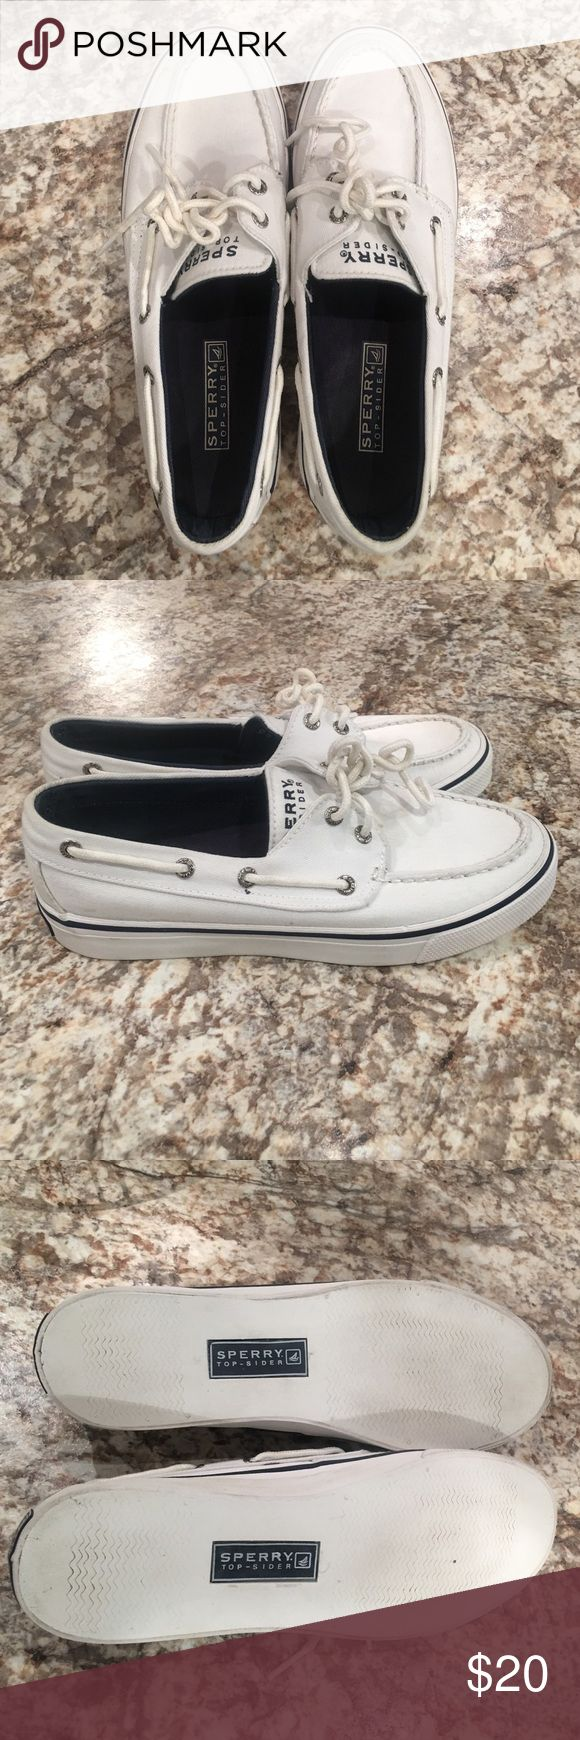 White Sperry Topsider shoes White and navy sperrys - Women's size 6 - worm a few times but no signs of wear Sperry Shoes Flats & Loafers